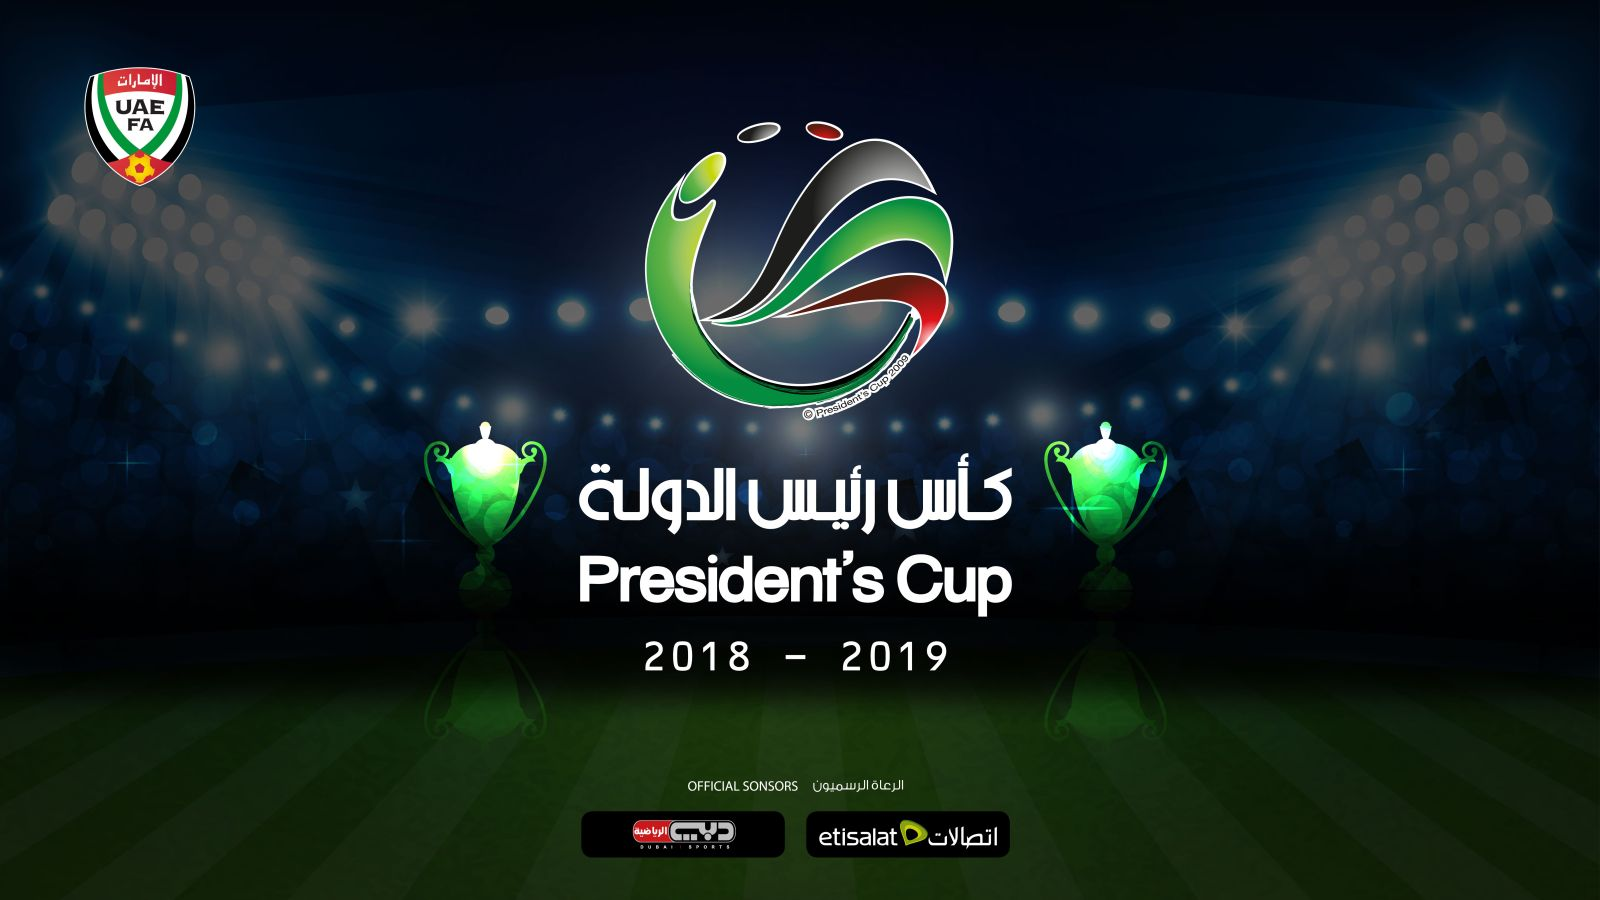 UAE President's Cup